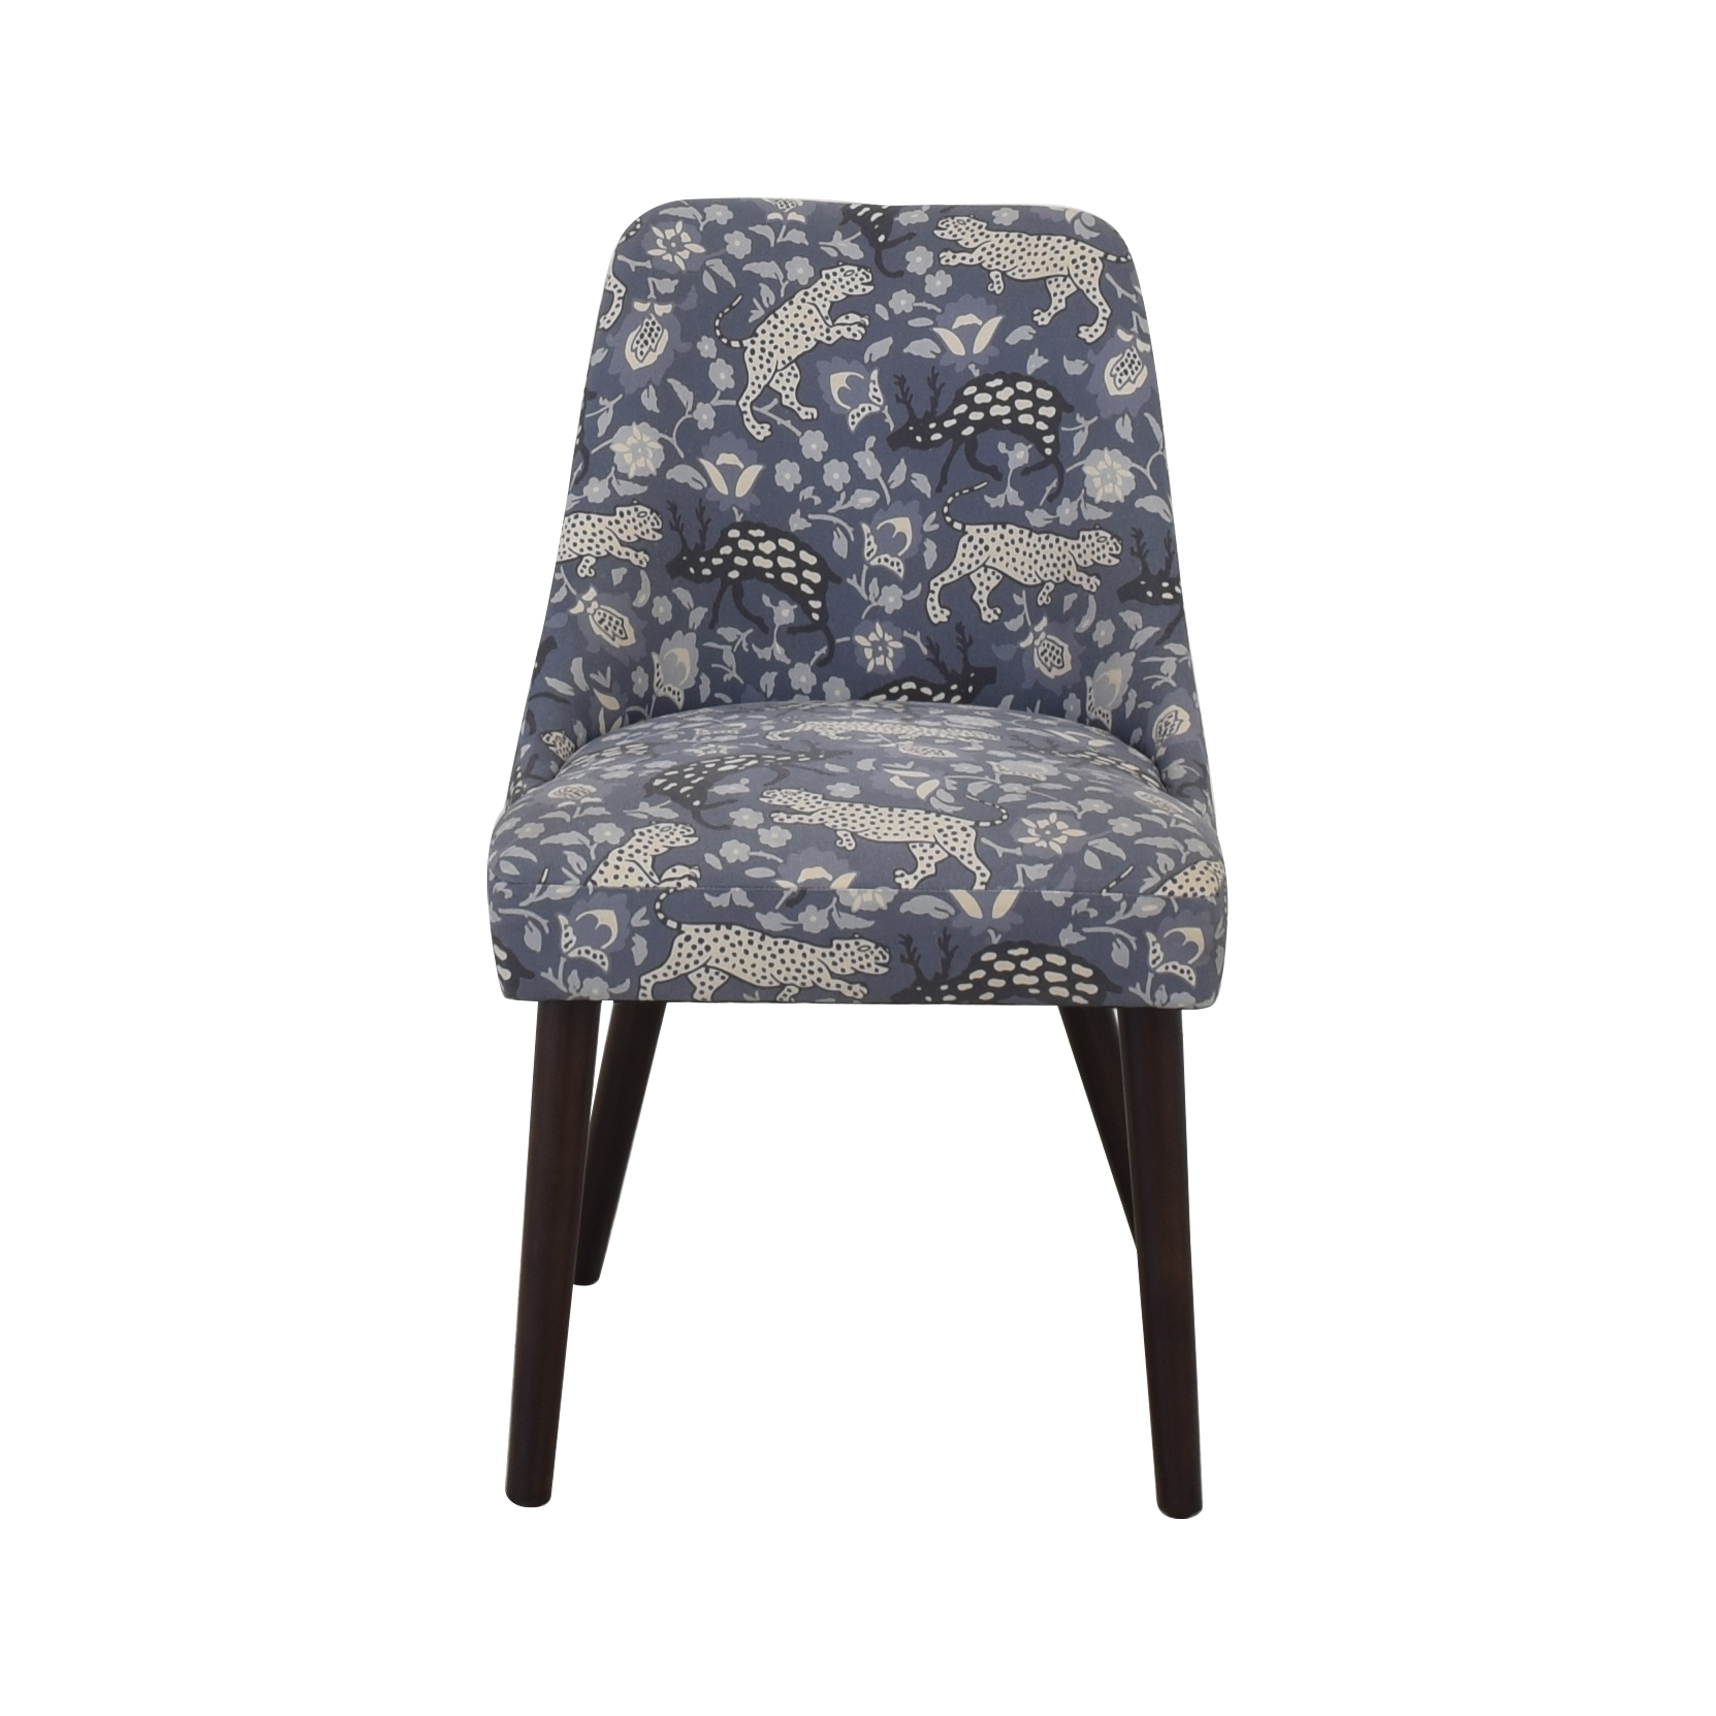 patterned upholstered dining chairs